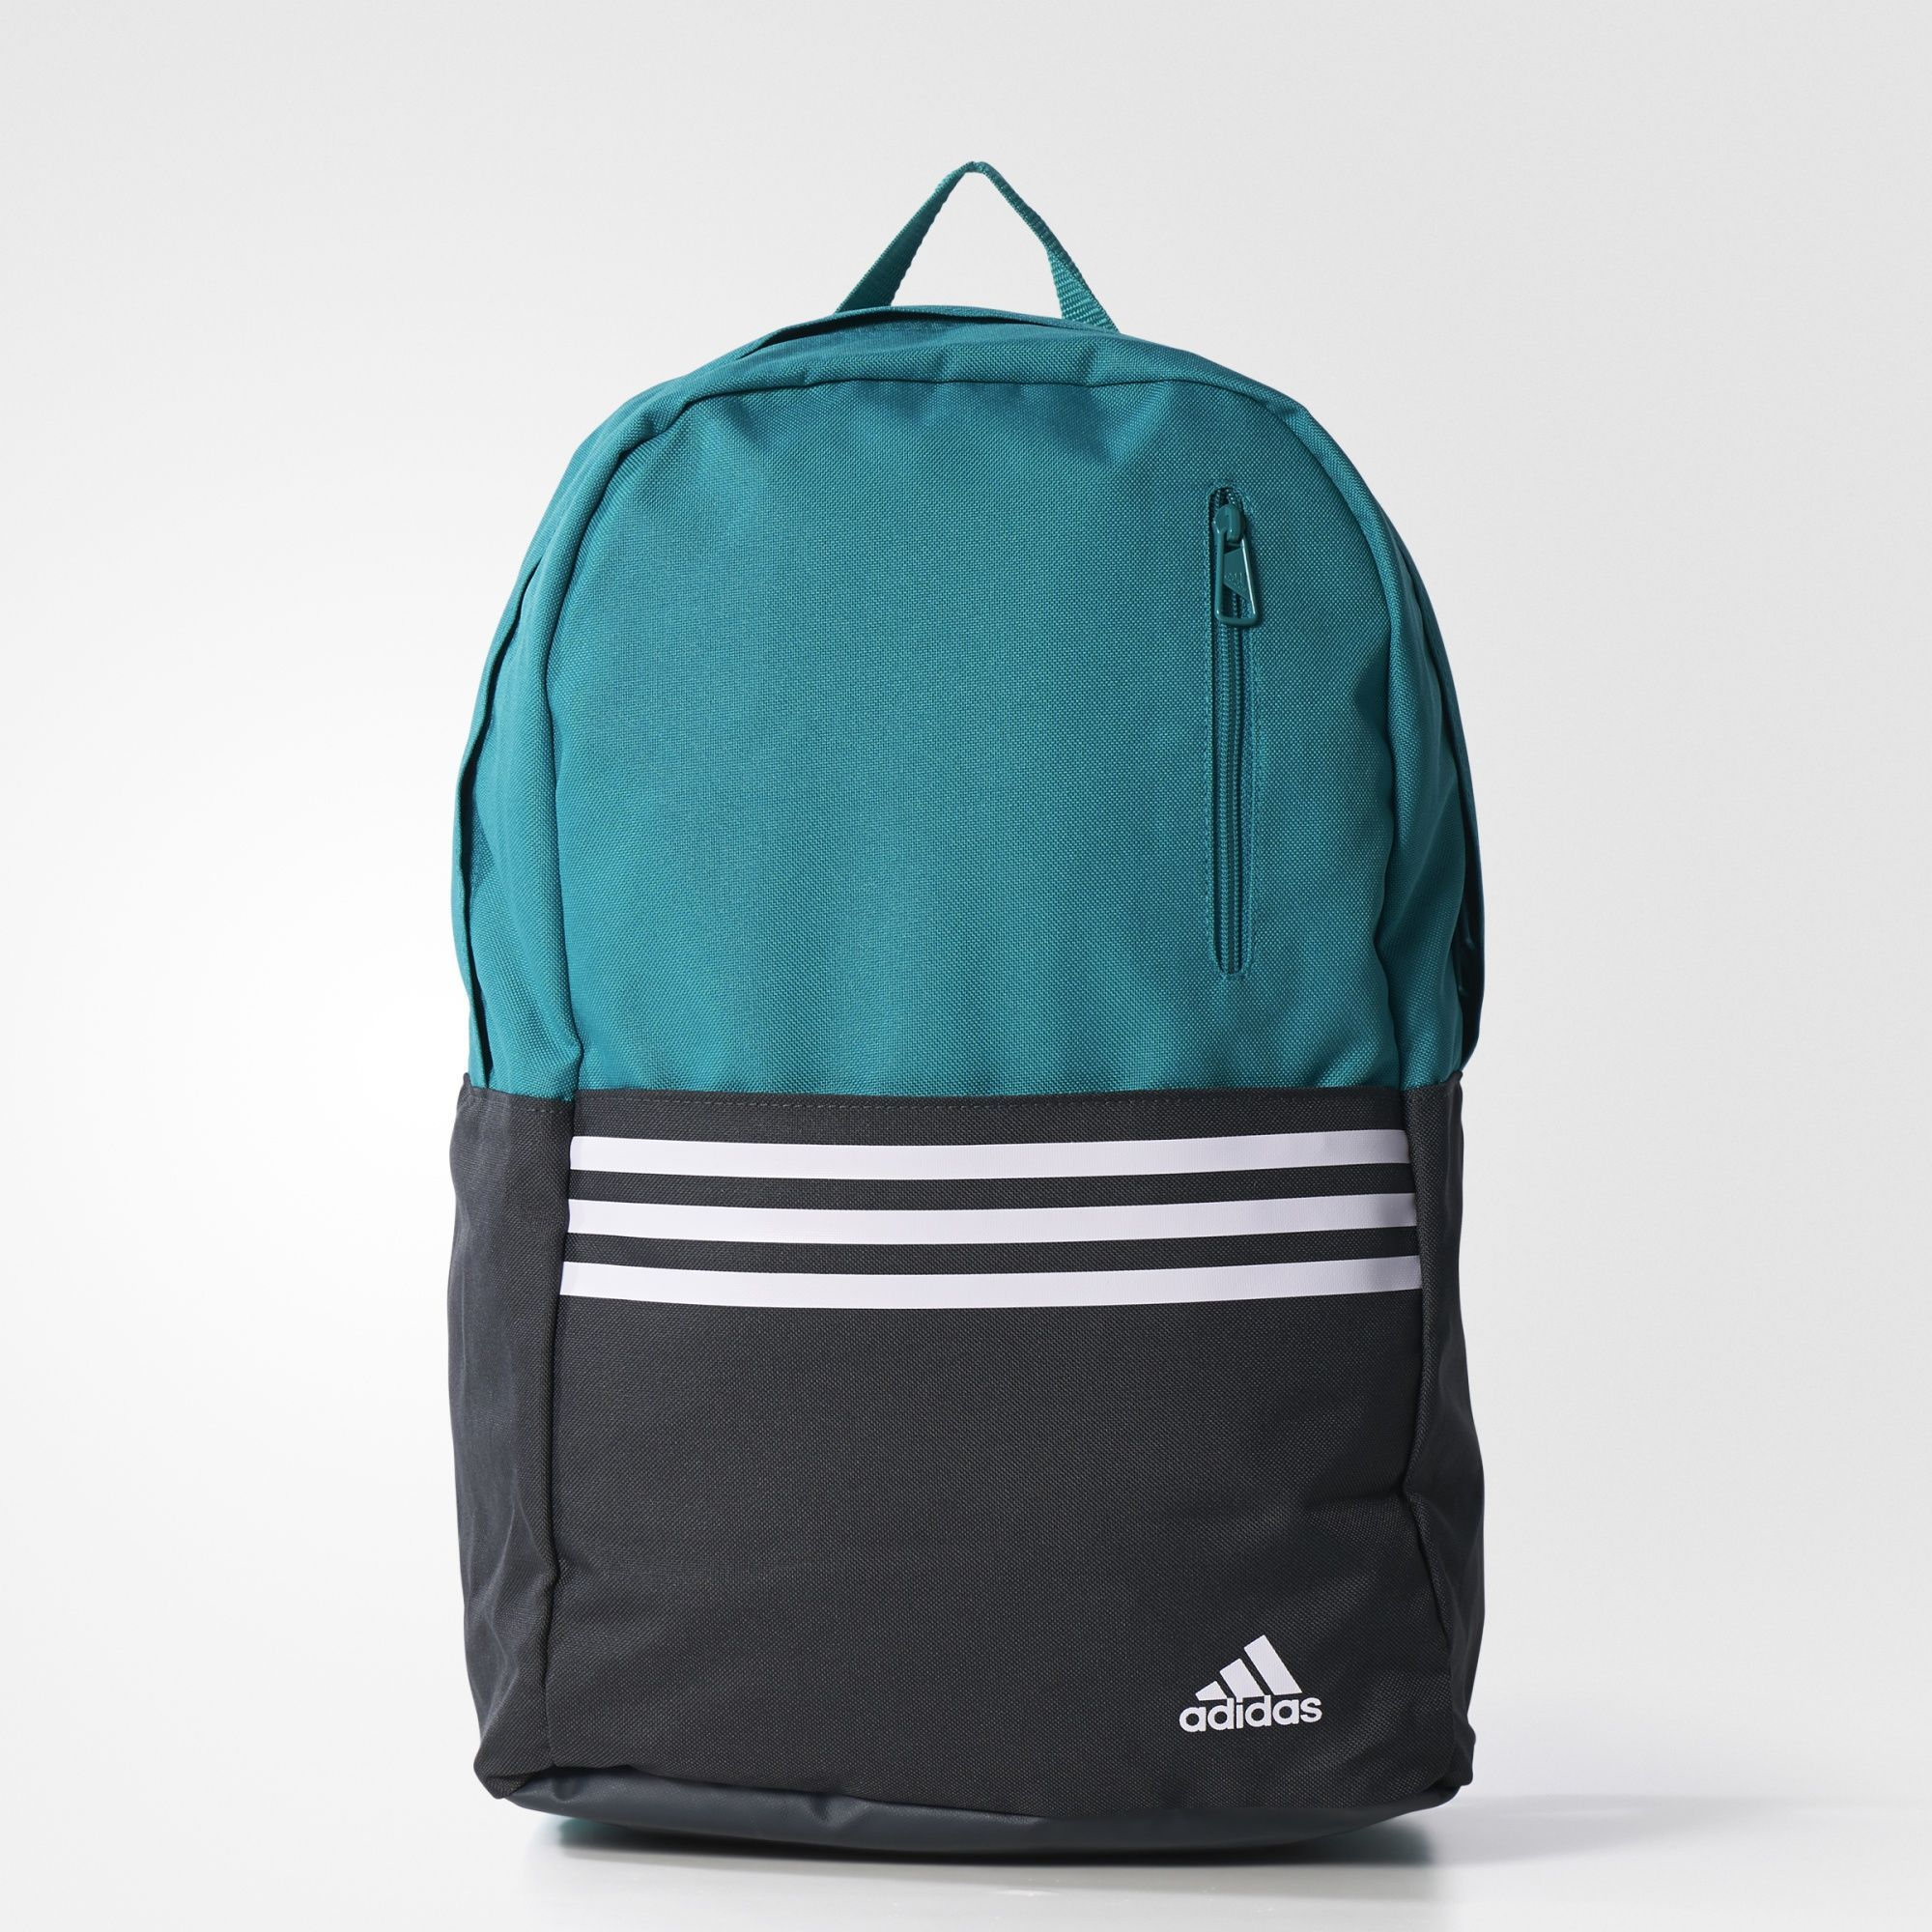 993fd9c46f adidas - Mochila Versatile 3S. Find this Pin and more on Bags ...